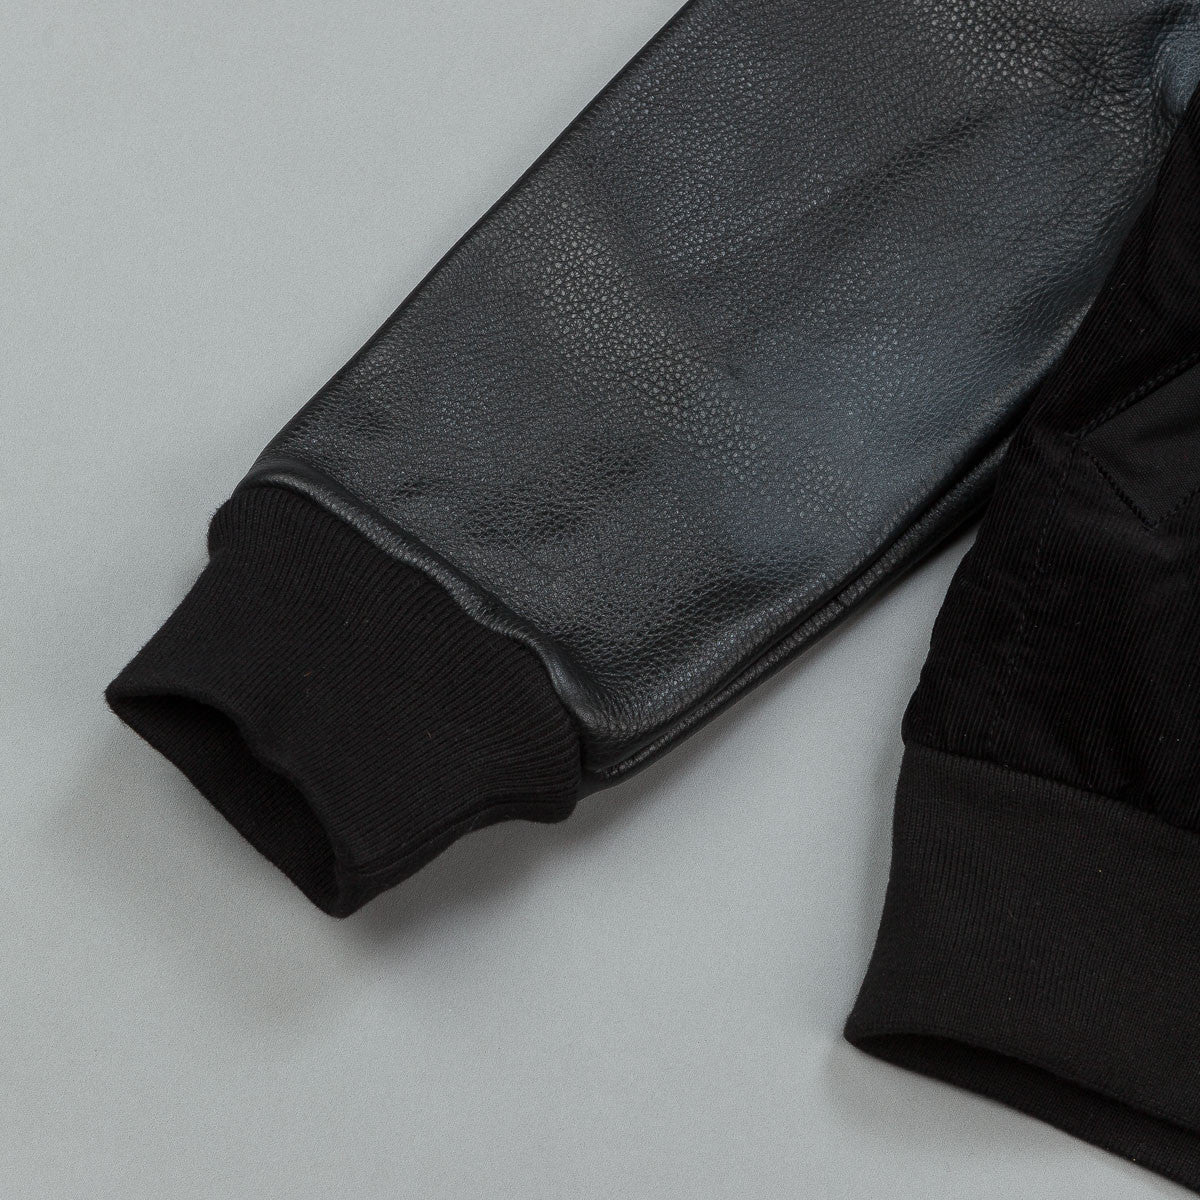 The Quiet Life Leather Arm Coach Jacket - Black